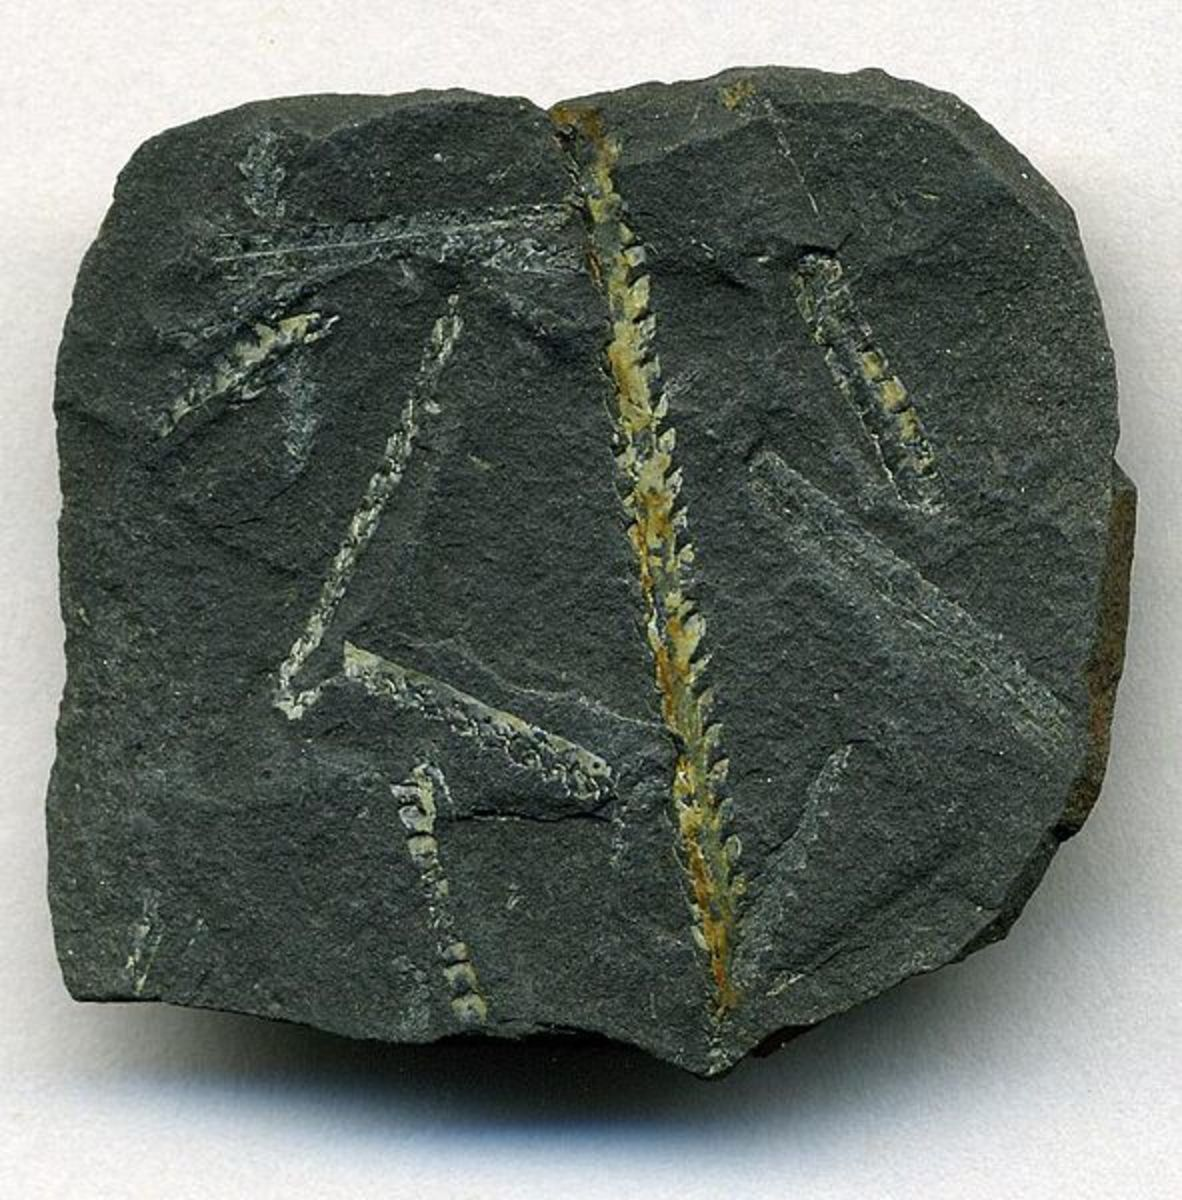 Graptolite fossils from Dobb's Linn.  Image courtesy Wikimedia Commons.